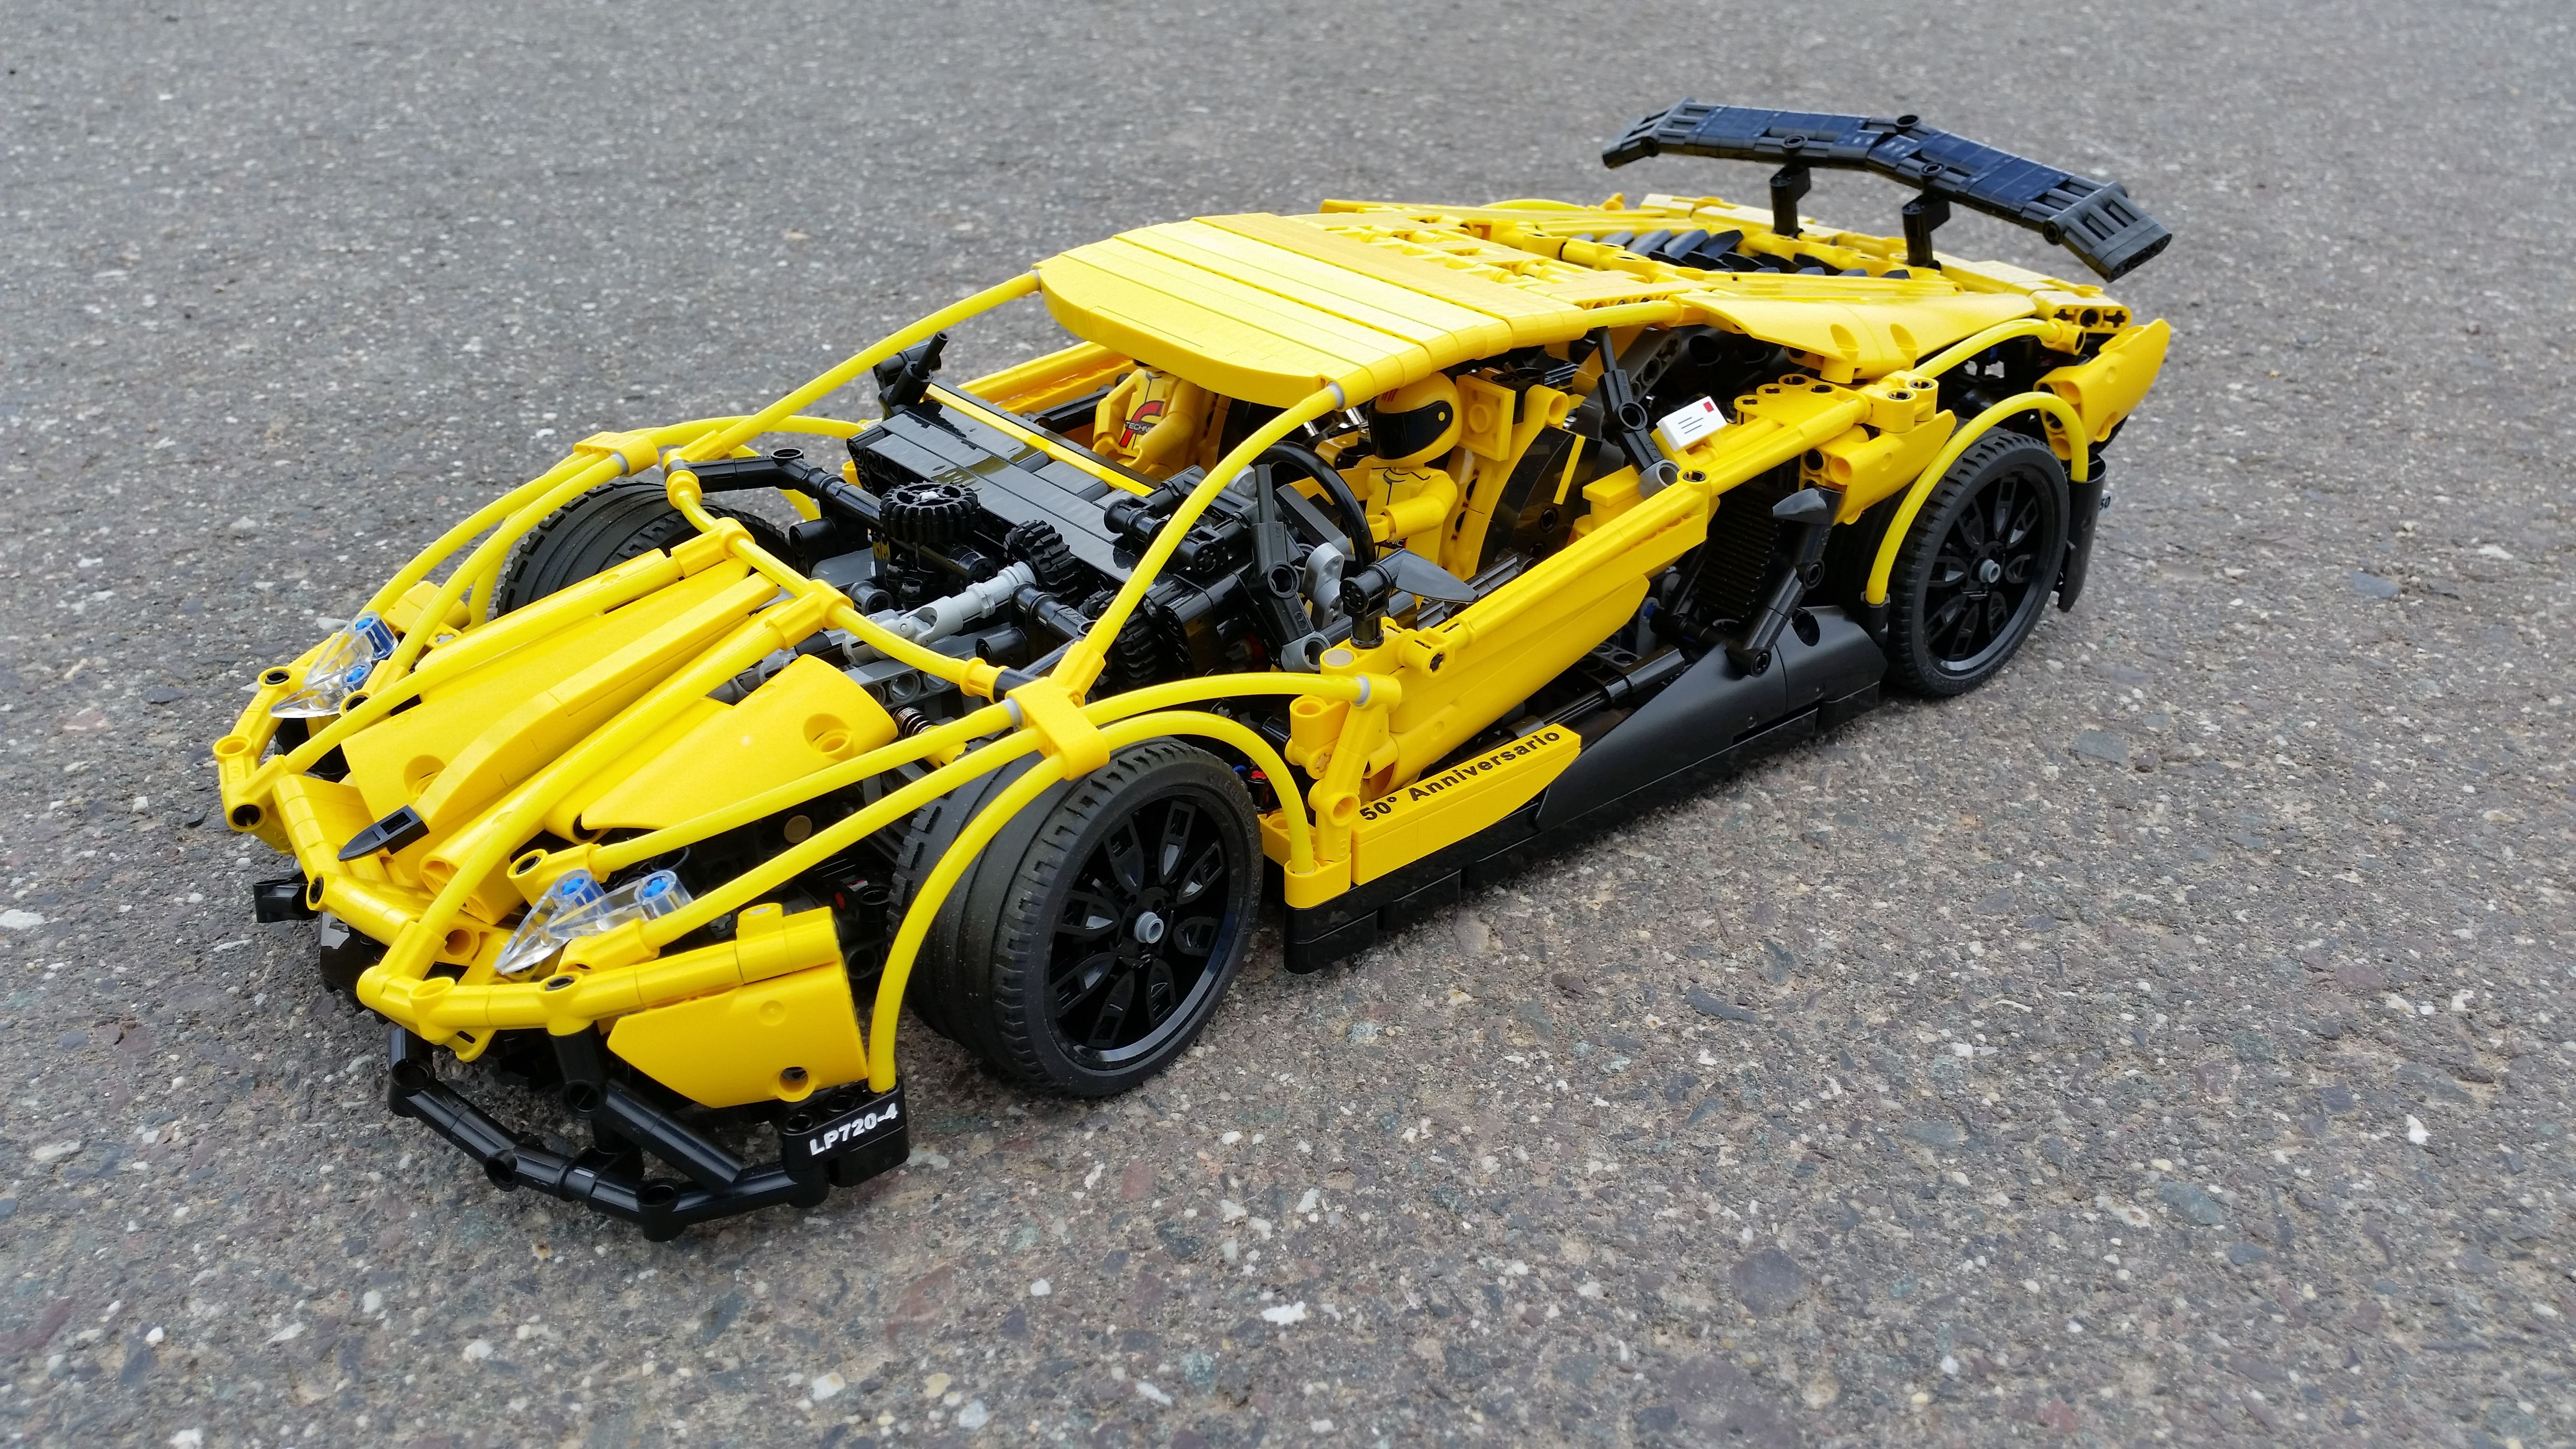 lego technic lamborghini aventador yellow hobby lego pinterest lego technic lego and. Black Bedroom Furniture Sets. Home Design Ideas